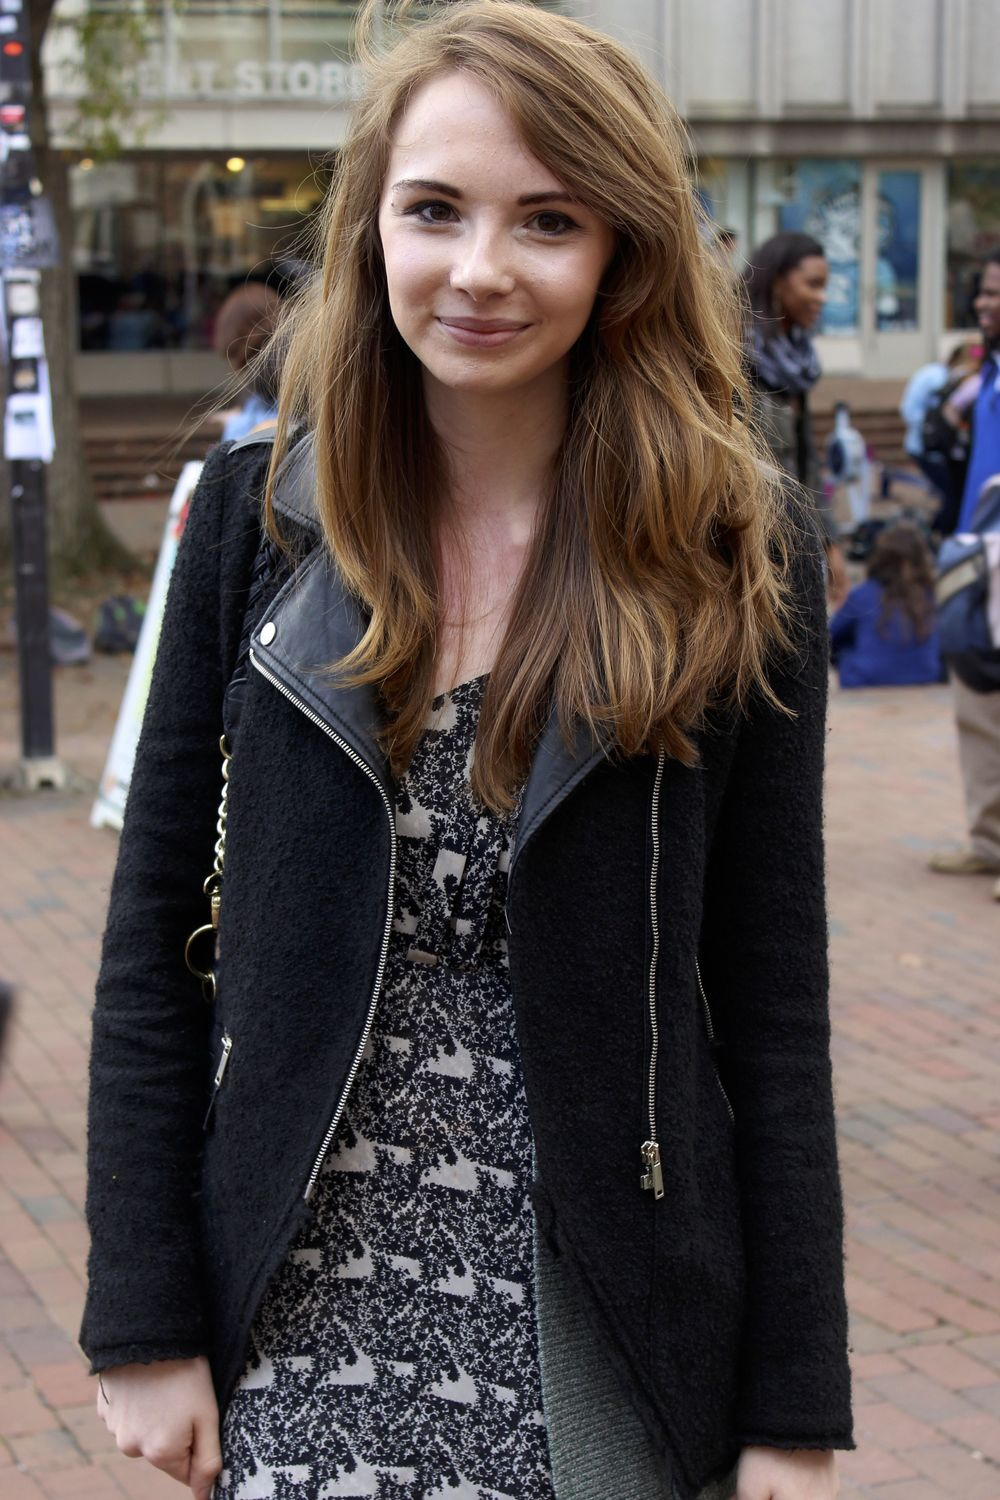 Meghan F, UNC student, Class of 2015 studying Biology and History, wears a pleather jacket over a fractal pattern dress